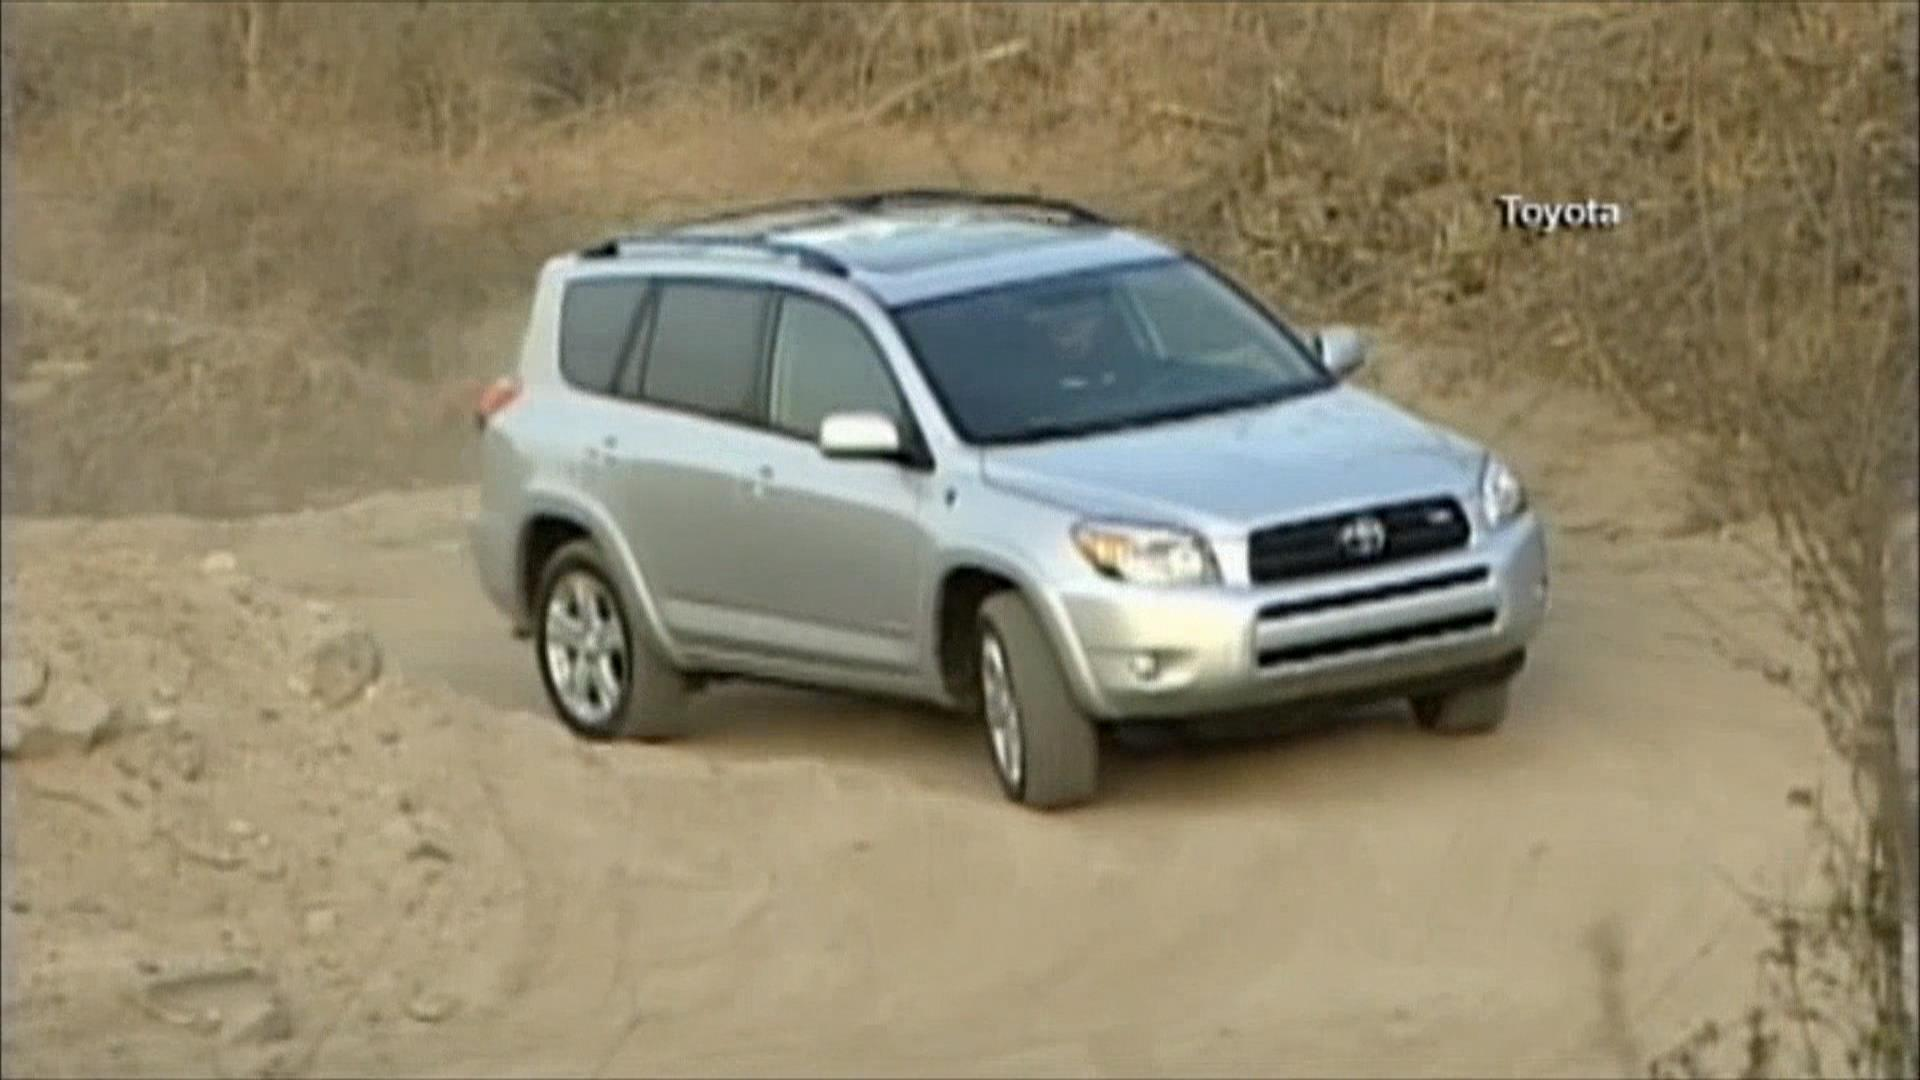 toyota recalls million vehicles due to faulty seat belts nbc news. Black Bedroom Furniture Sets. Home Design Ideas